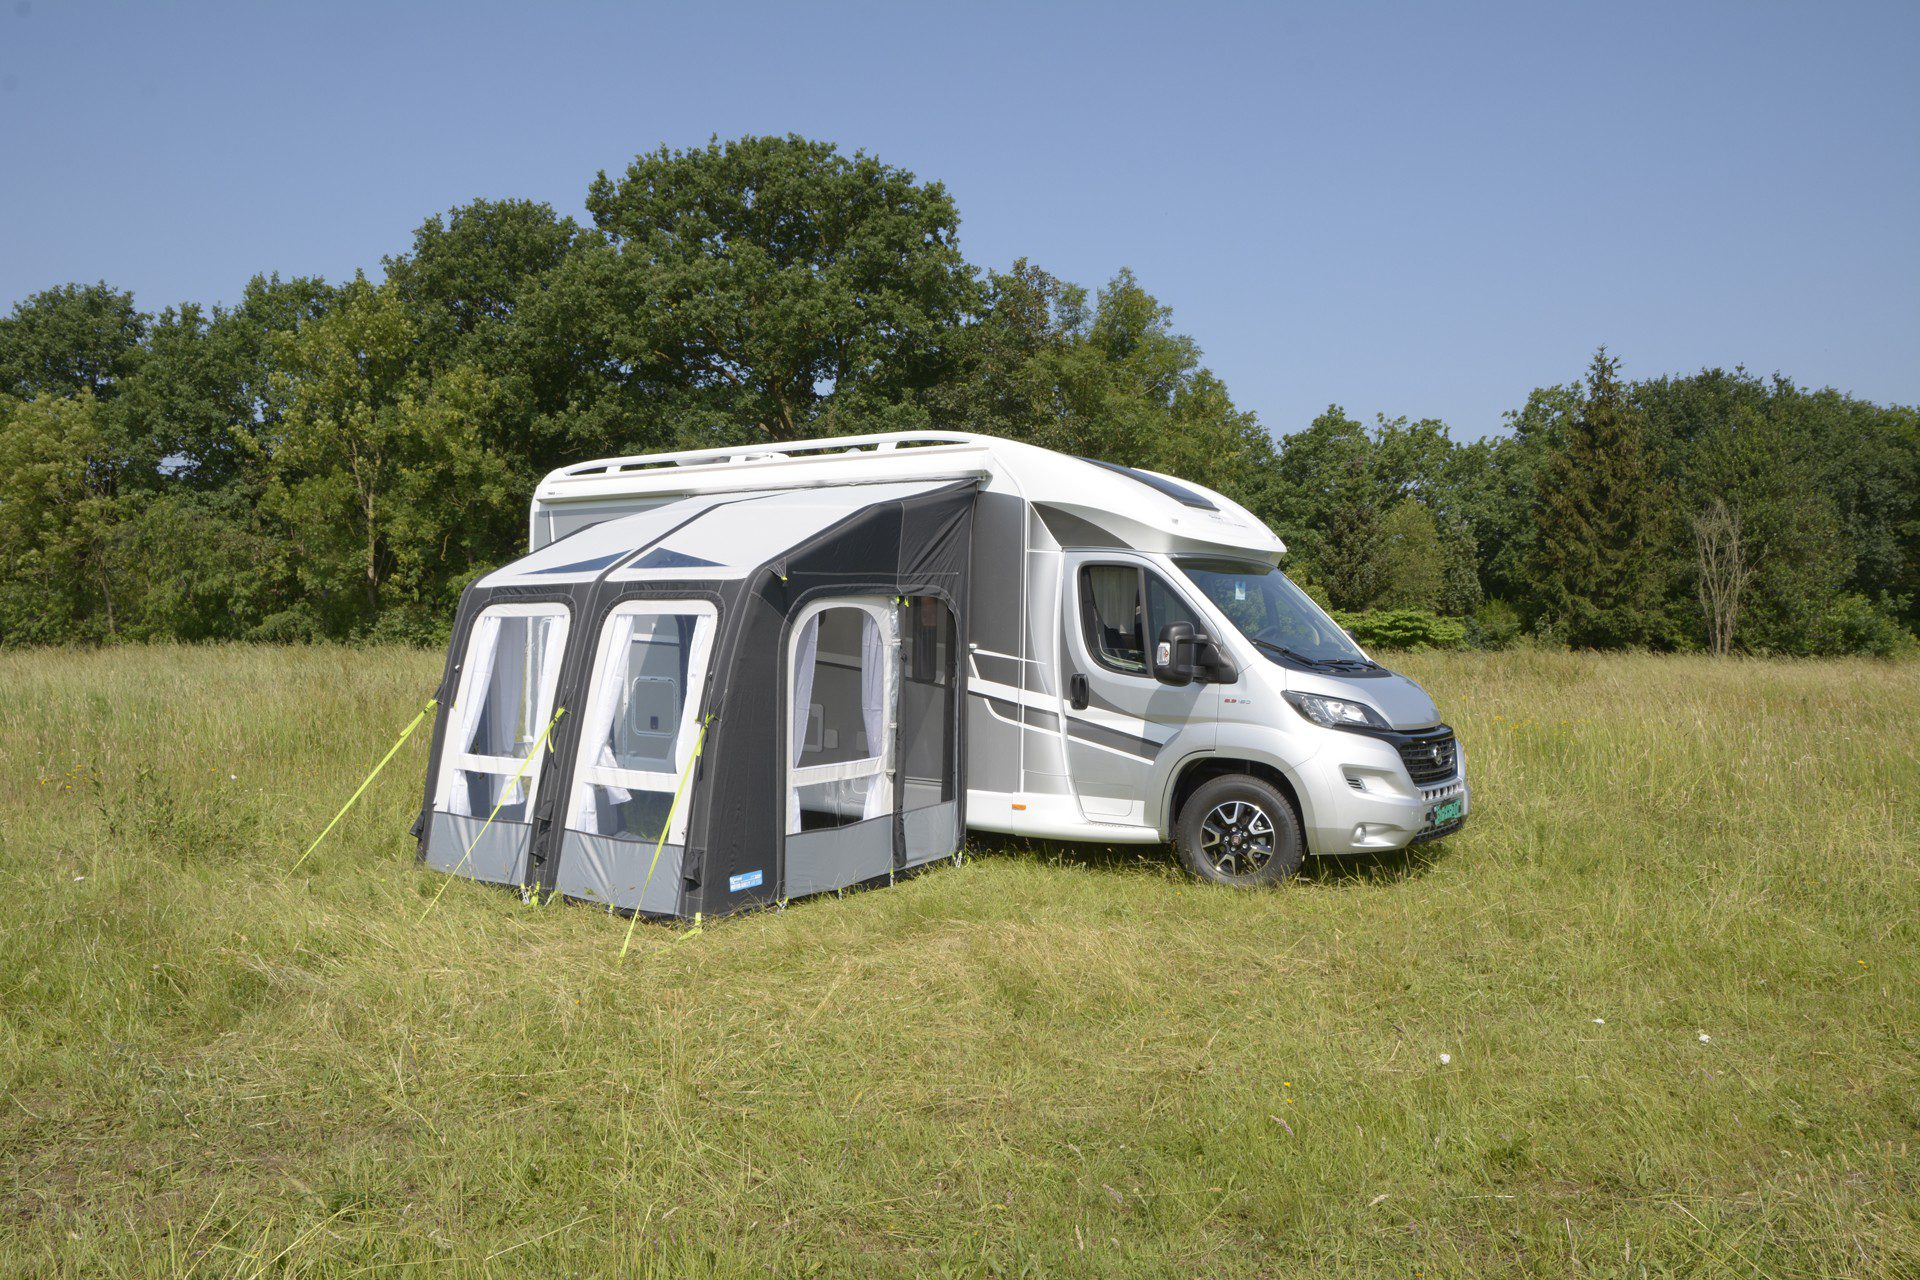 Kampa Motor Rally Air Pro 260 Motor Home Awning 2019 1